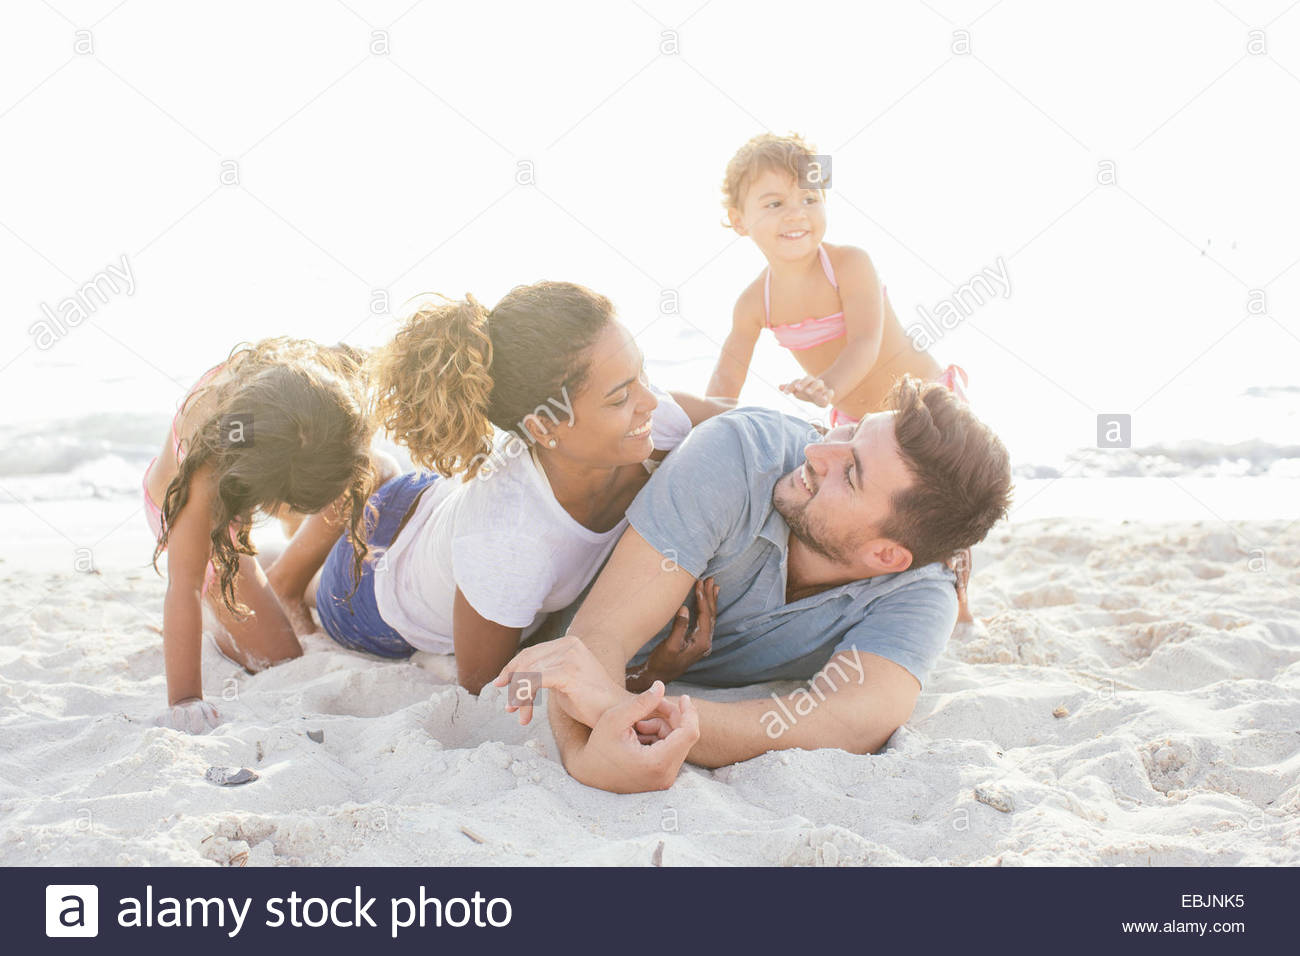 Couple with two girls play fighting on beach, Tuscany, Italy - Stock Image